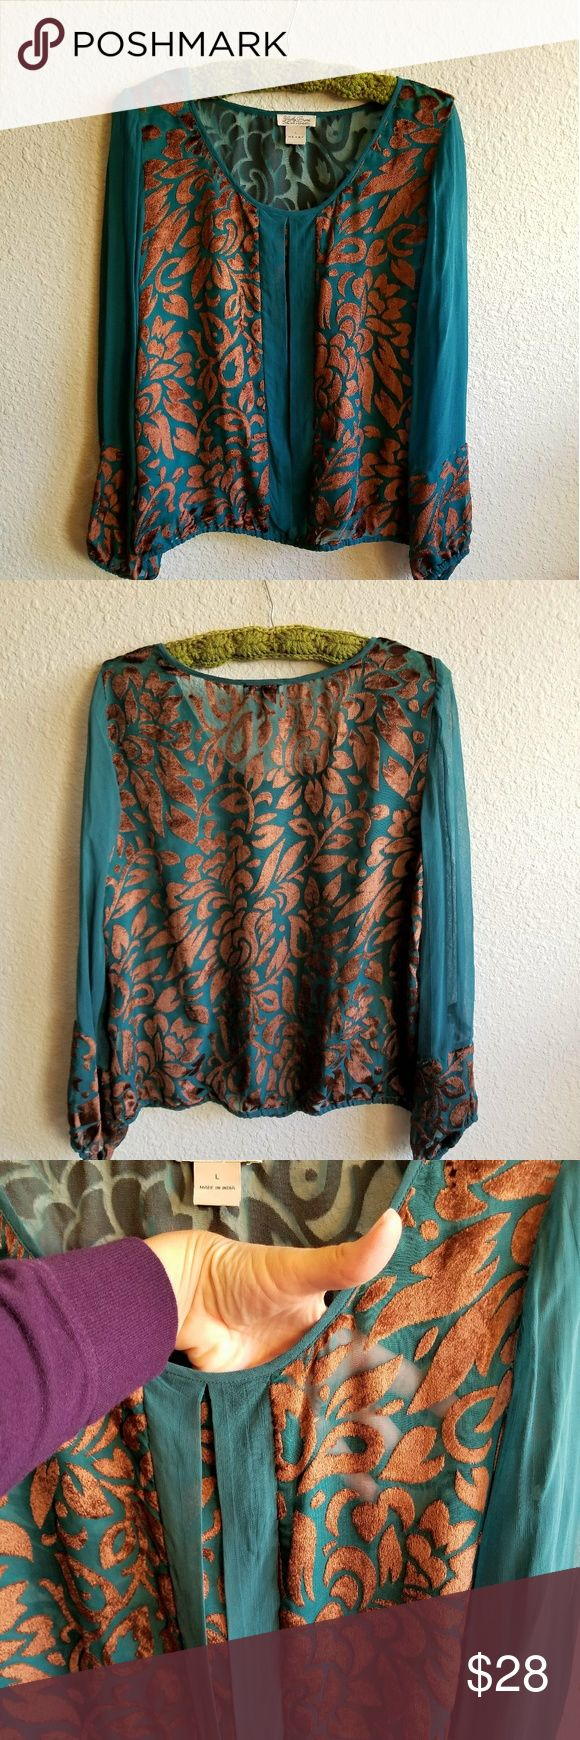 """Lucky Sheer Teal Green & Brown Blouse Gorgeous peacock green & raised brown velvety vines make this sheer blouse a go to for your fall and winter wear. Such a warm and rich feel to this piece. Try it with a long beige skirt and tall boots. Wear it with flare jeans, wedges, and a trench coat. Many, many possibilities! Bust: 20.5"""", Length: 23"""", Shoulder: 16"""", Bottom: 18"""" unstretched elastic band, Arm: 23.5"""" from the top of the shoulder, arm opening: 4.25"""" unstretched. Lucky Brand Tops Blouses"""